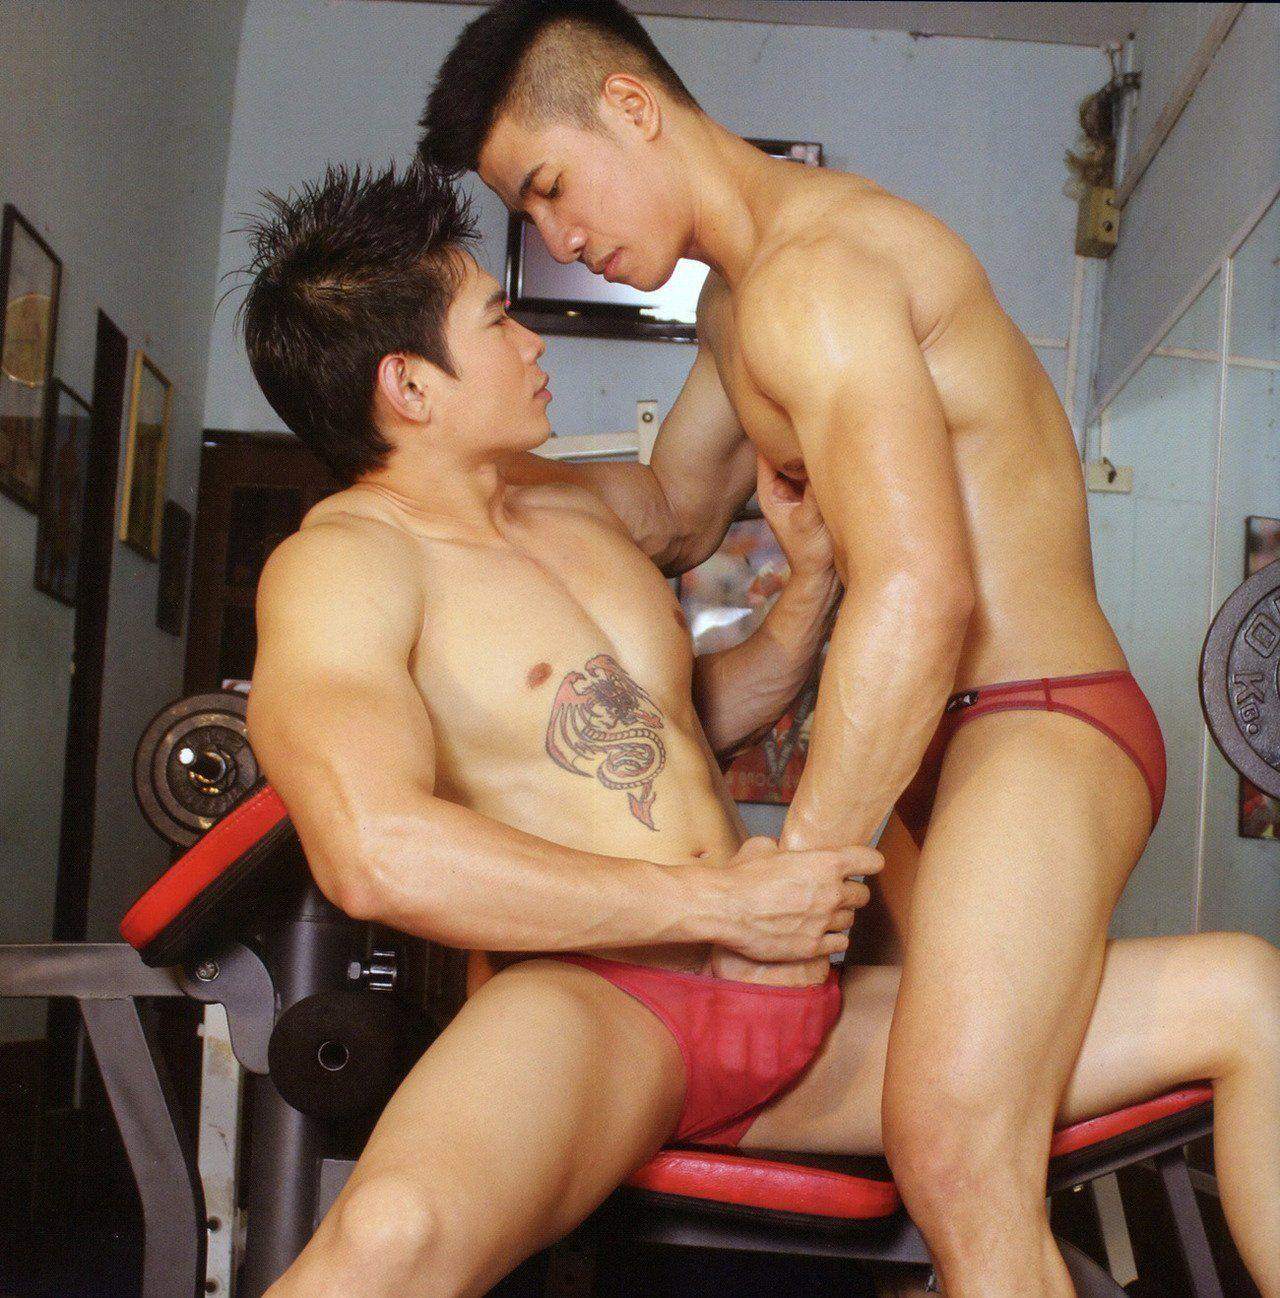 Free asian gay men sex pictures